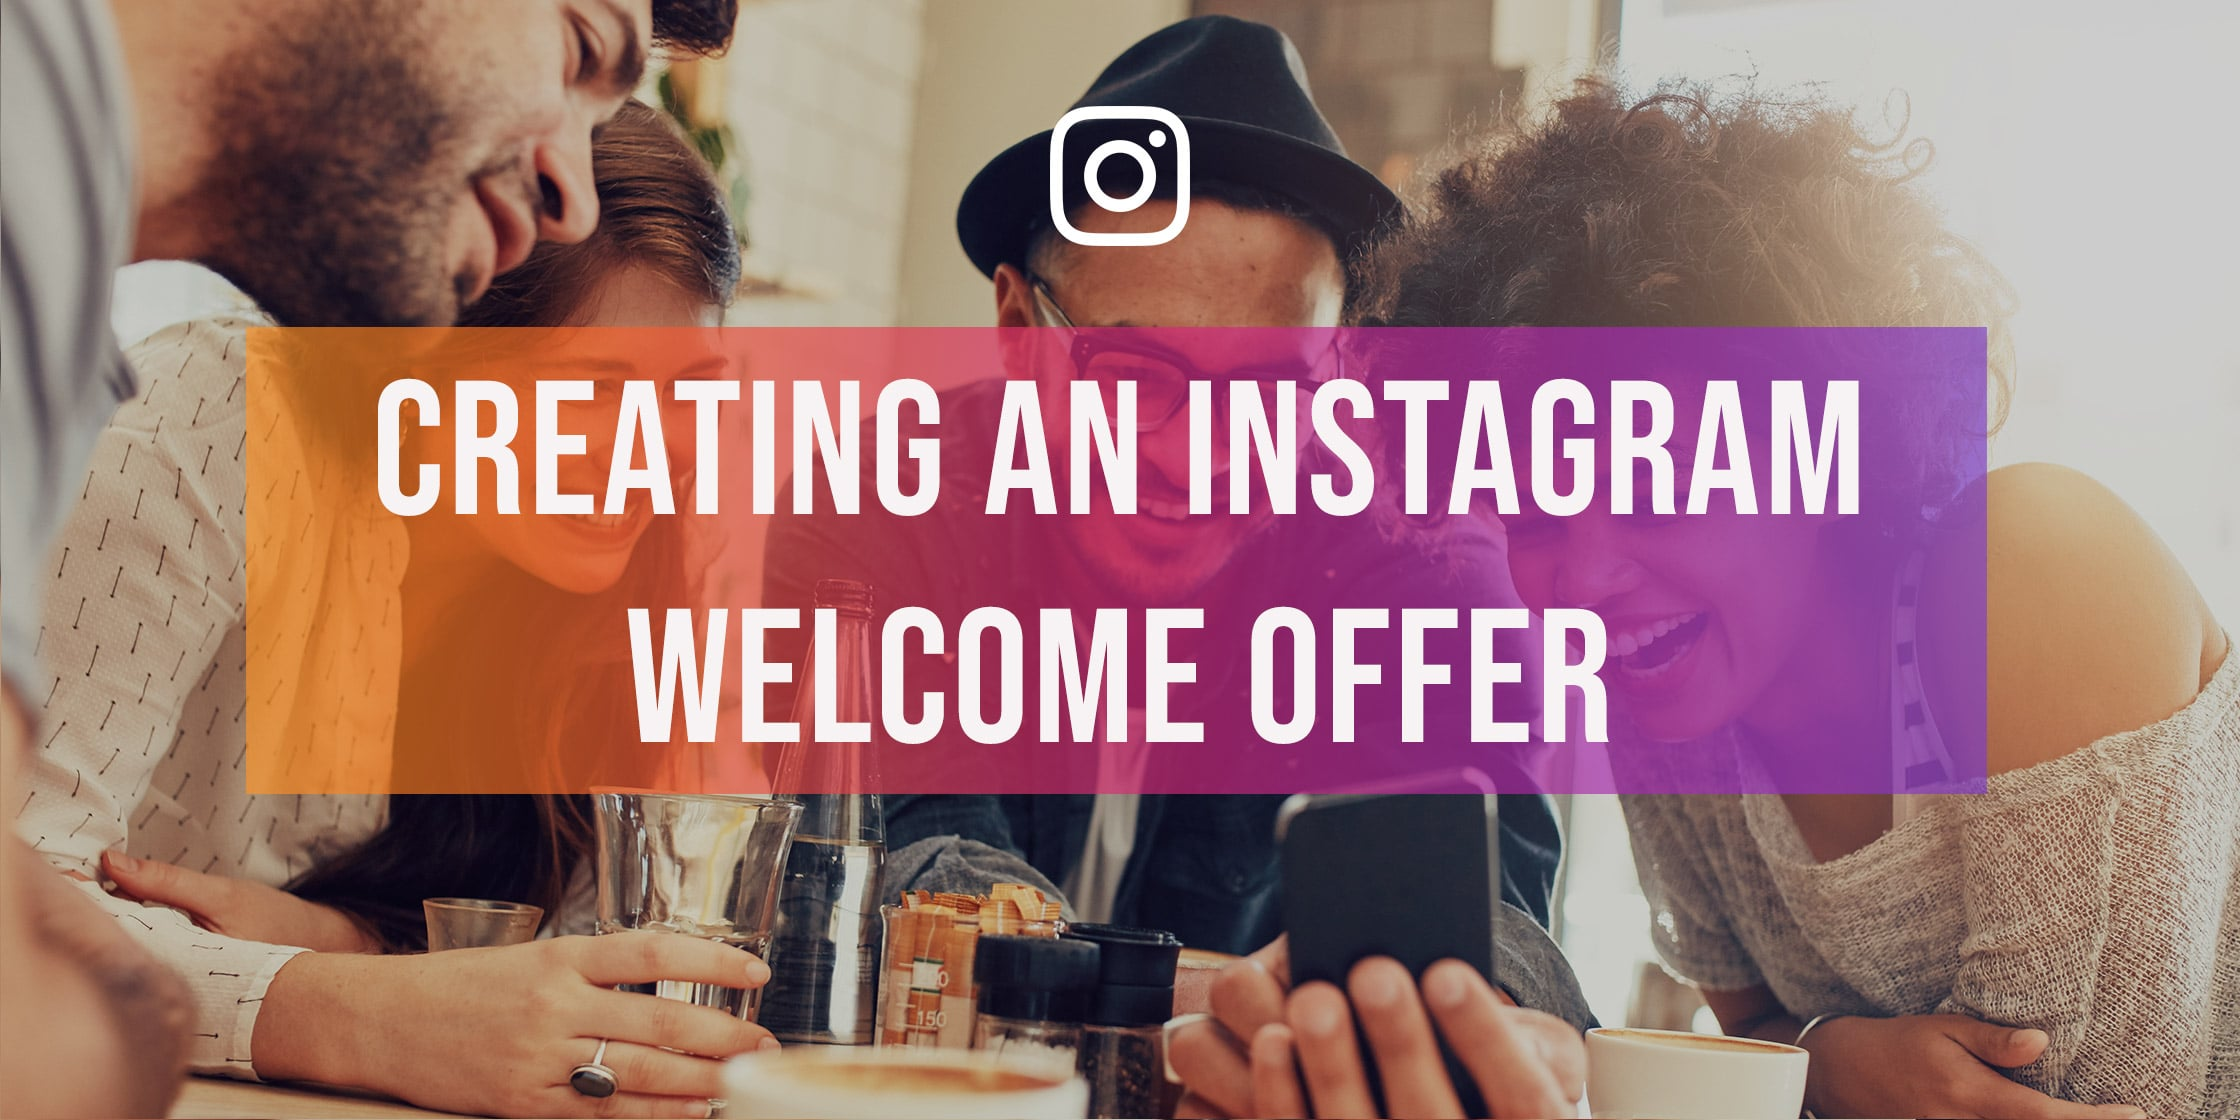 How to Build an Instagram Welcome Offer: Grow Your List & Drive Sales From Instagram Bio Traffic